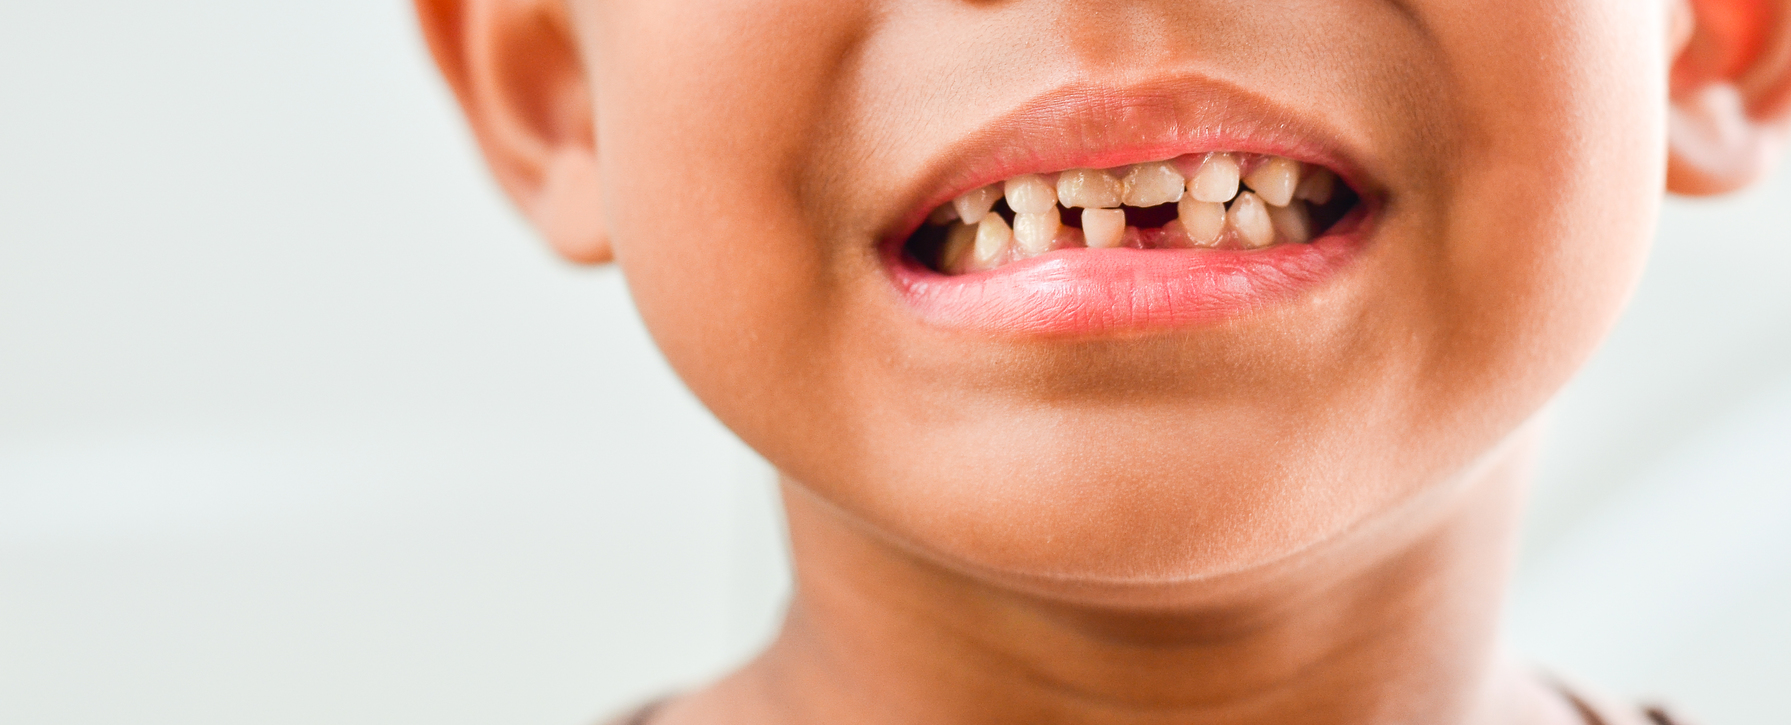 You and Your Chipped Tooth: The Big Deal You Should Mind